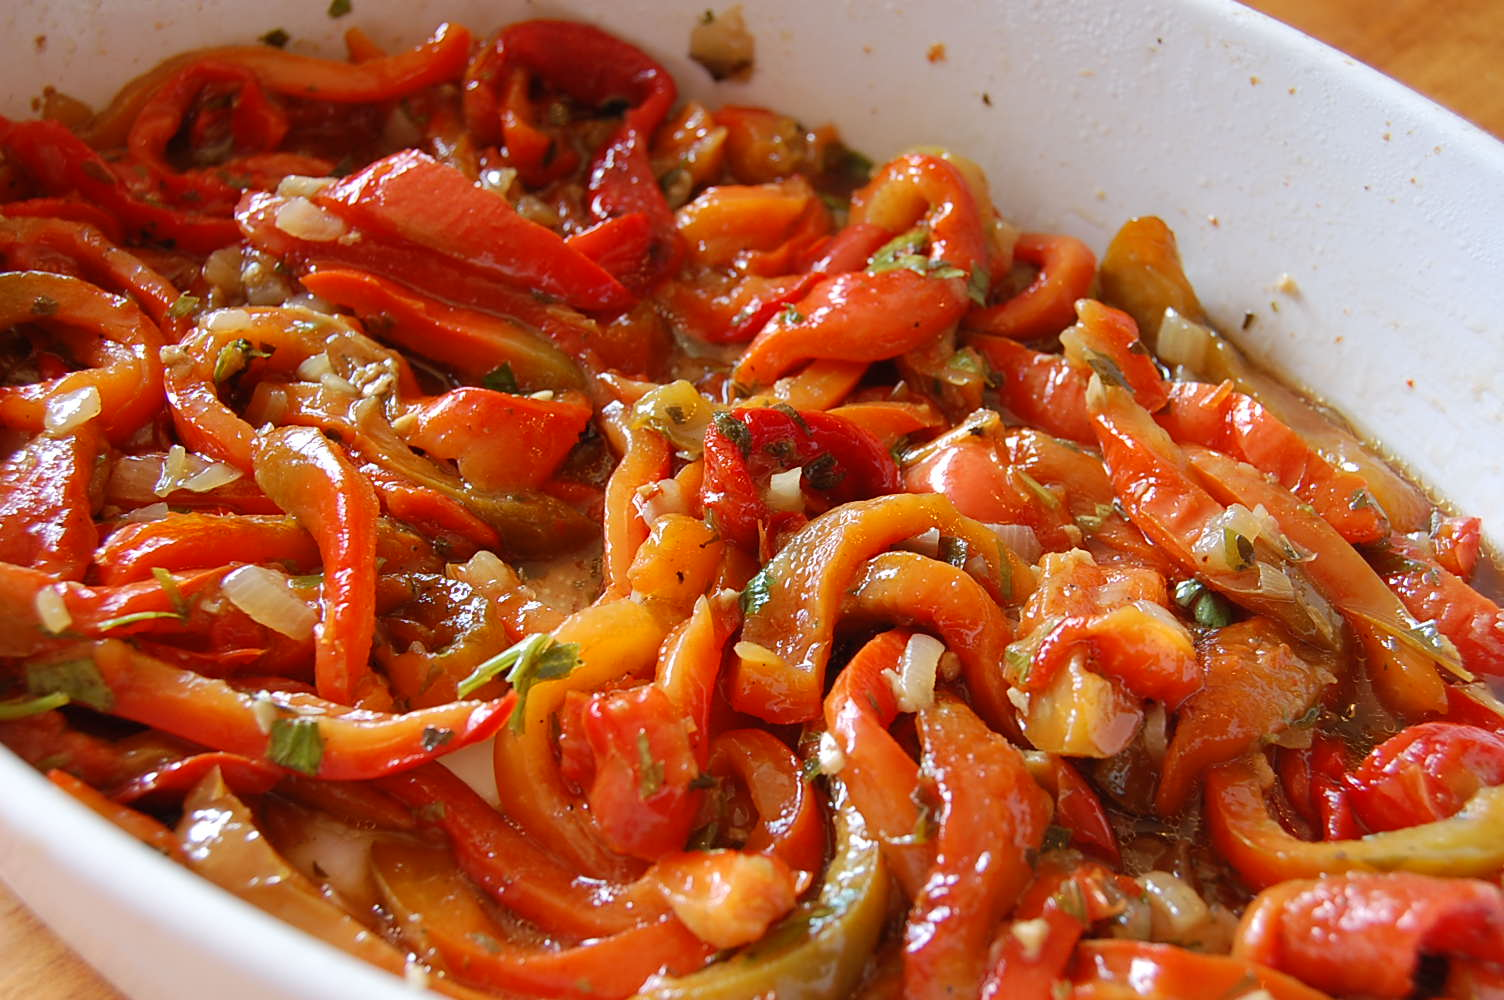 roasted sweet peppers is smoke roasted stuffed bell roast your peppers ...